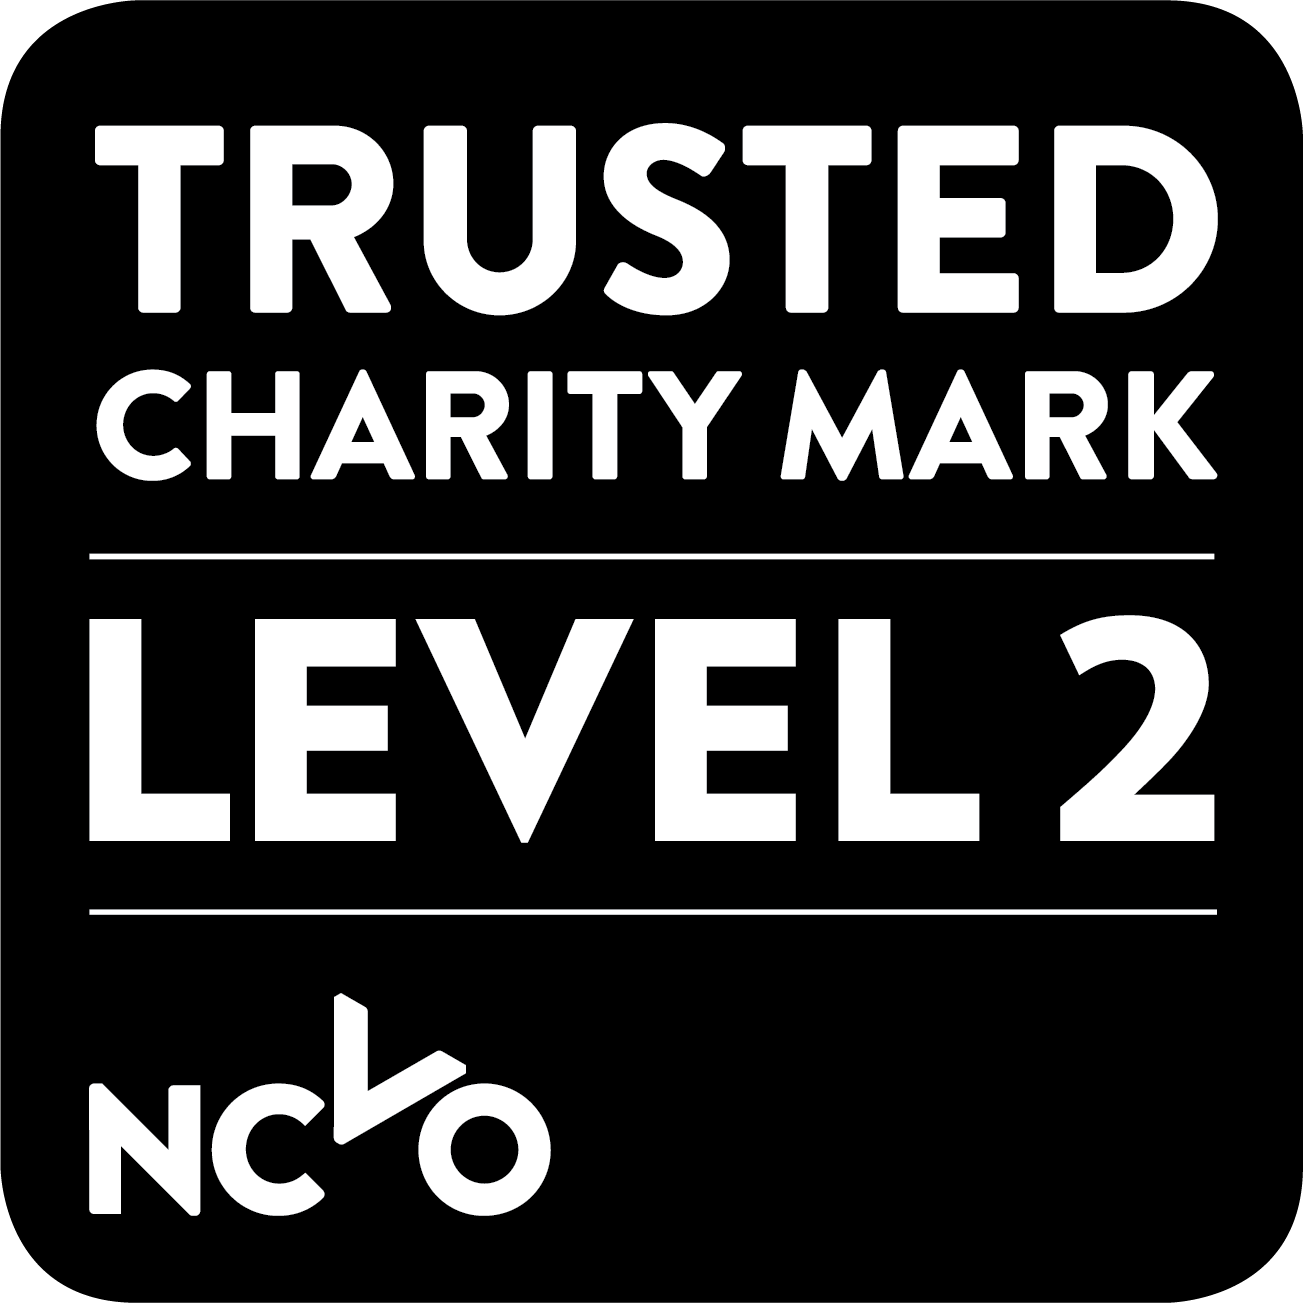 https://0201.nccdn.net/1_2/000/000/14b/dbc/Trusted-Charity-Mark---Level-2---BW---Web-1303x1303.png